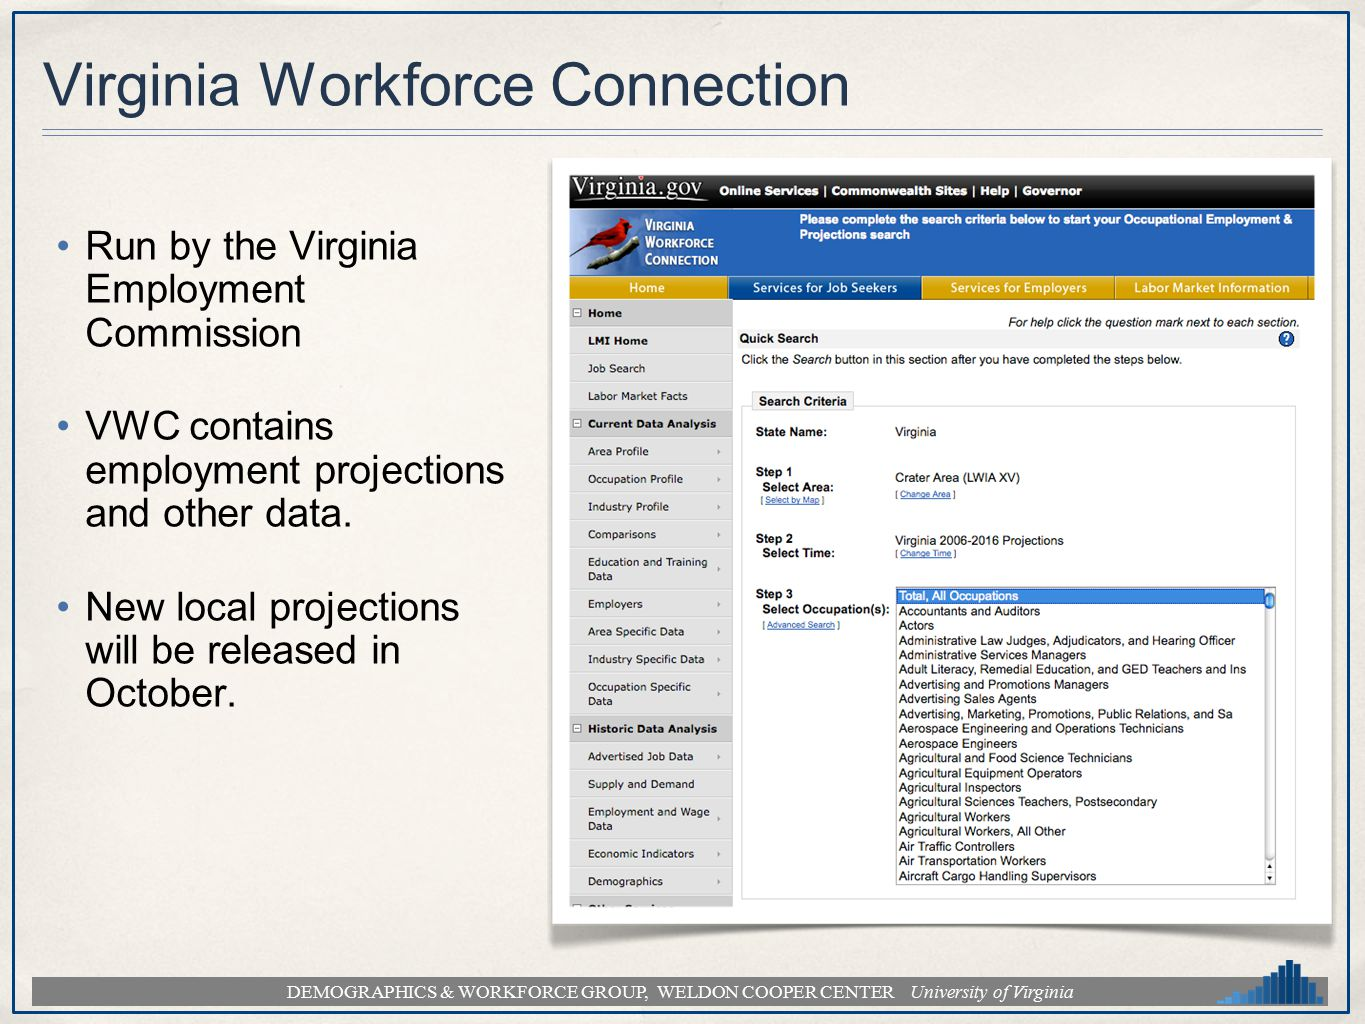 DEMOGRAPHICS & WORKFORCE GROUP, WELDON COOPER CENTER University of Virginia Virginia Workforce Connection Run by the Virginia Employment Commission VW